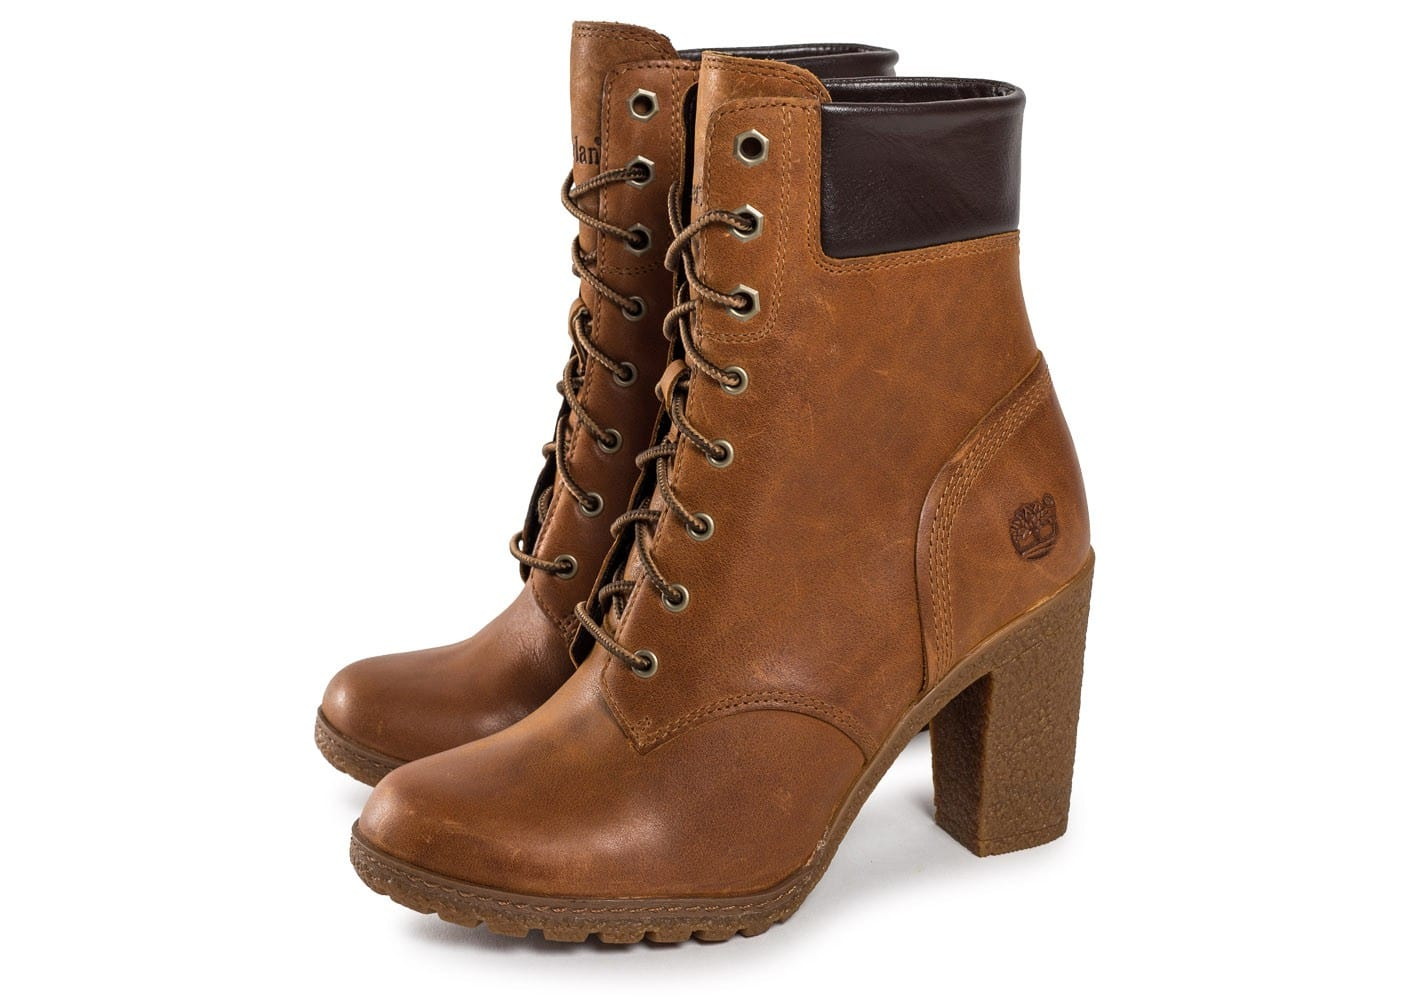 Femme Glancy Chaussures 6 Beige Boot Baskets Inch Timberland 7qxOUw44